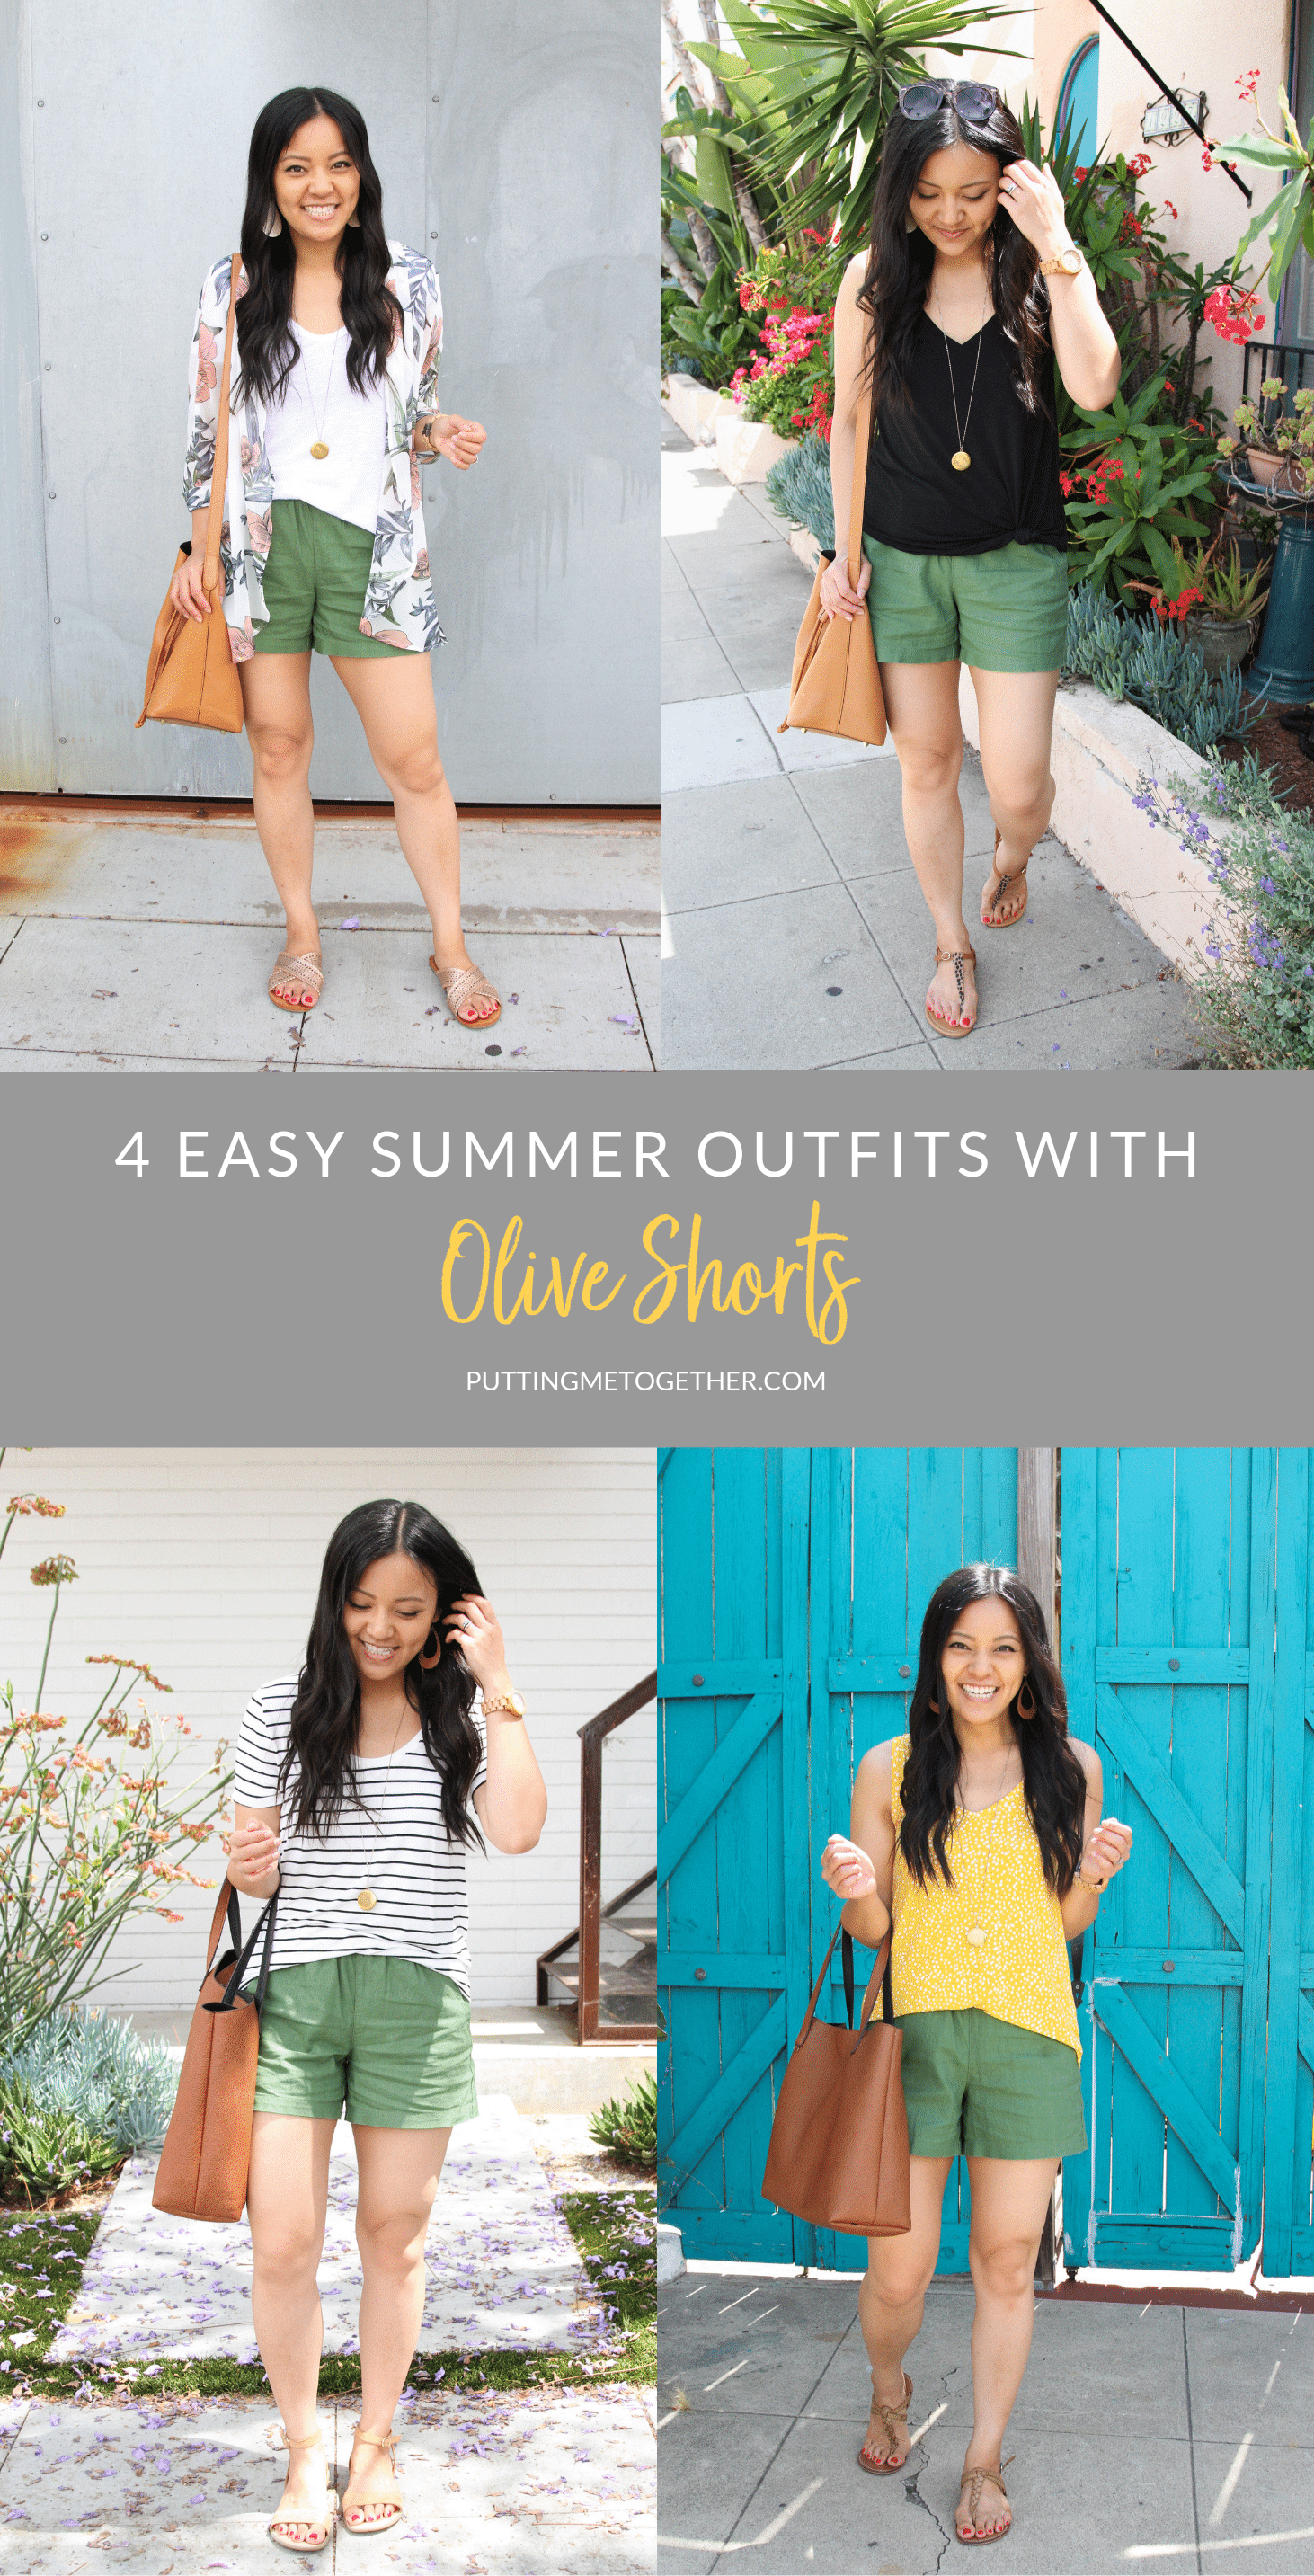 Four Summer Outfits With Olive Shorts